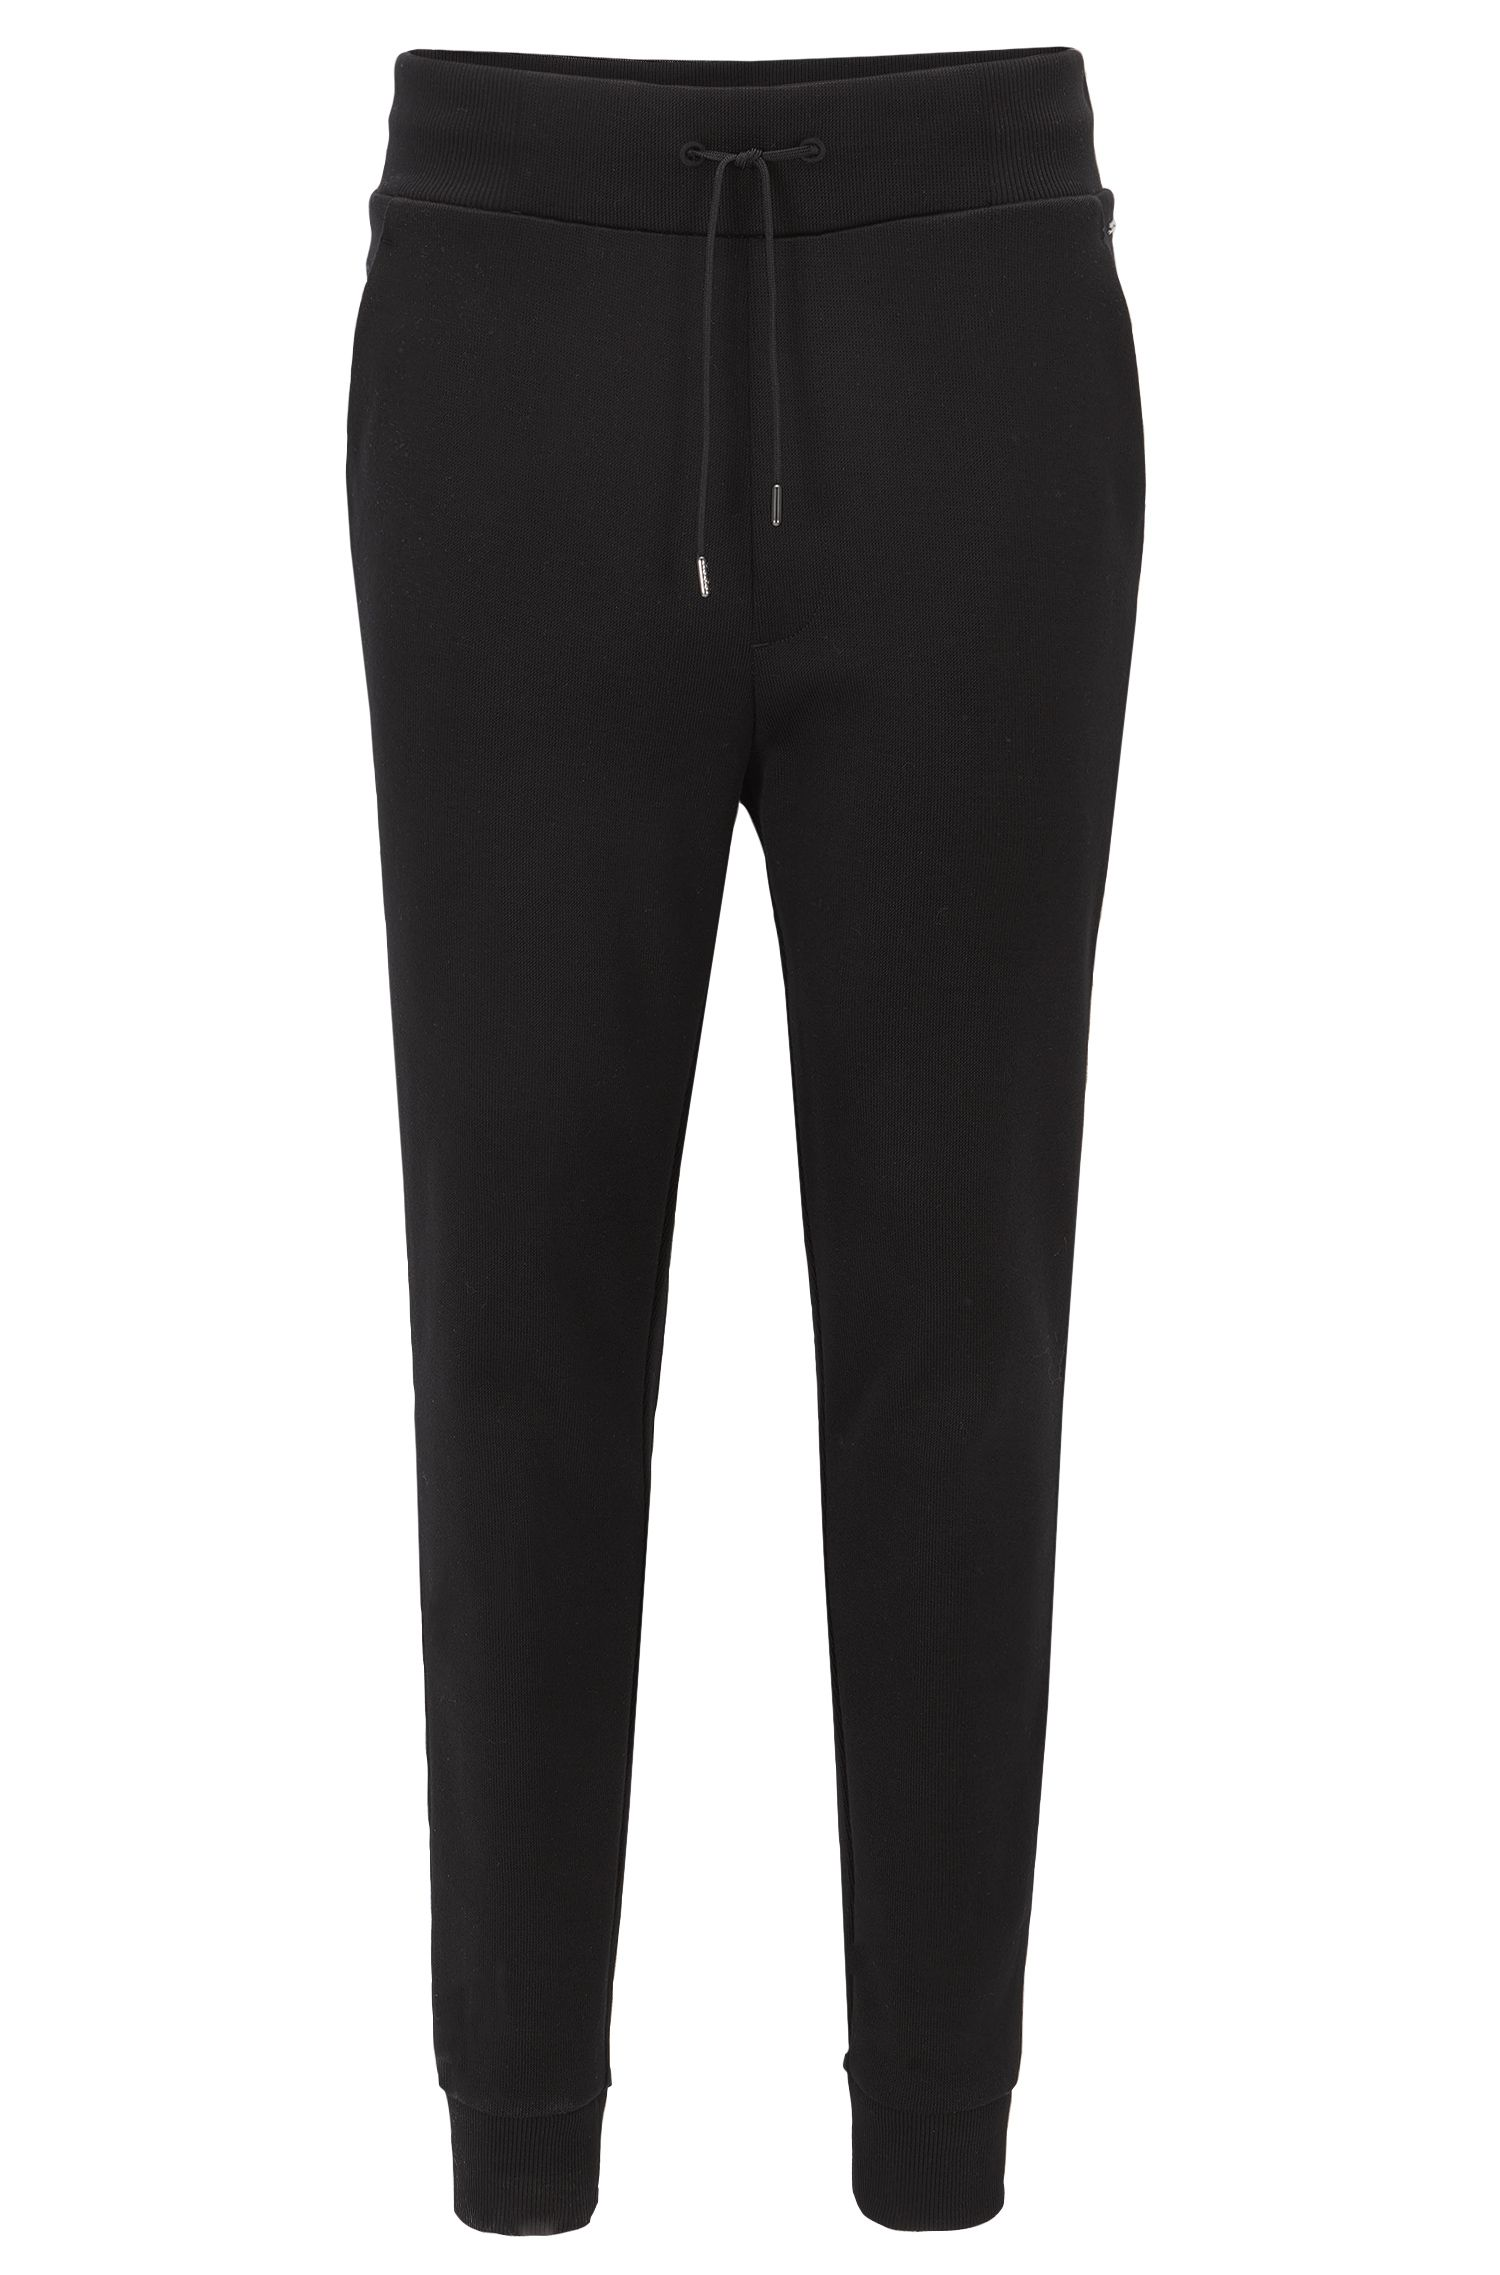 Relaxed-fit French rib trousers in cotton jersey